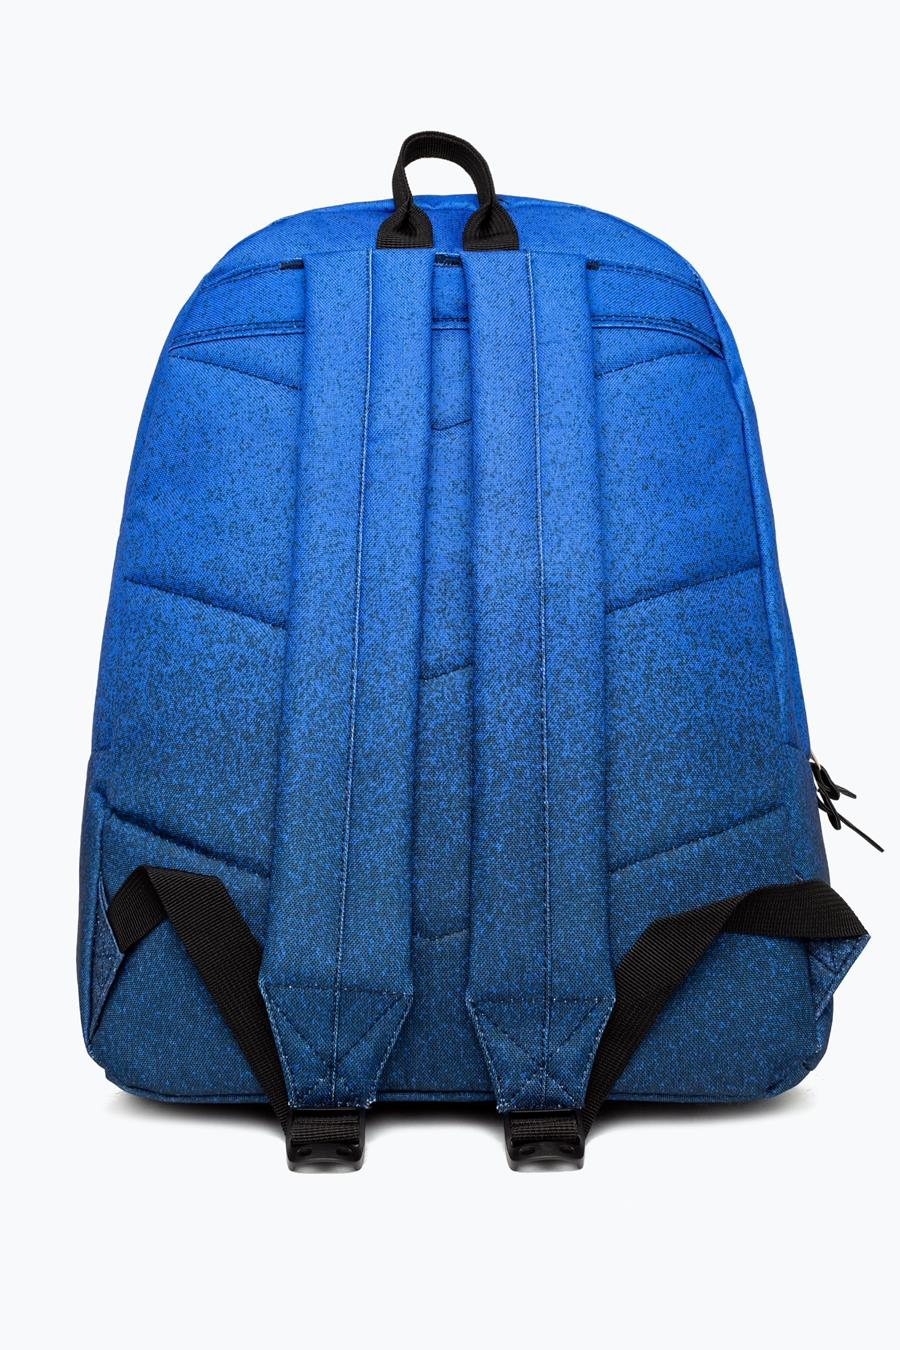 d85cc84052 HYPE NAVY SPECKLE FADE BACKPACK – JustHype ltd